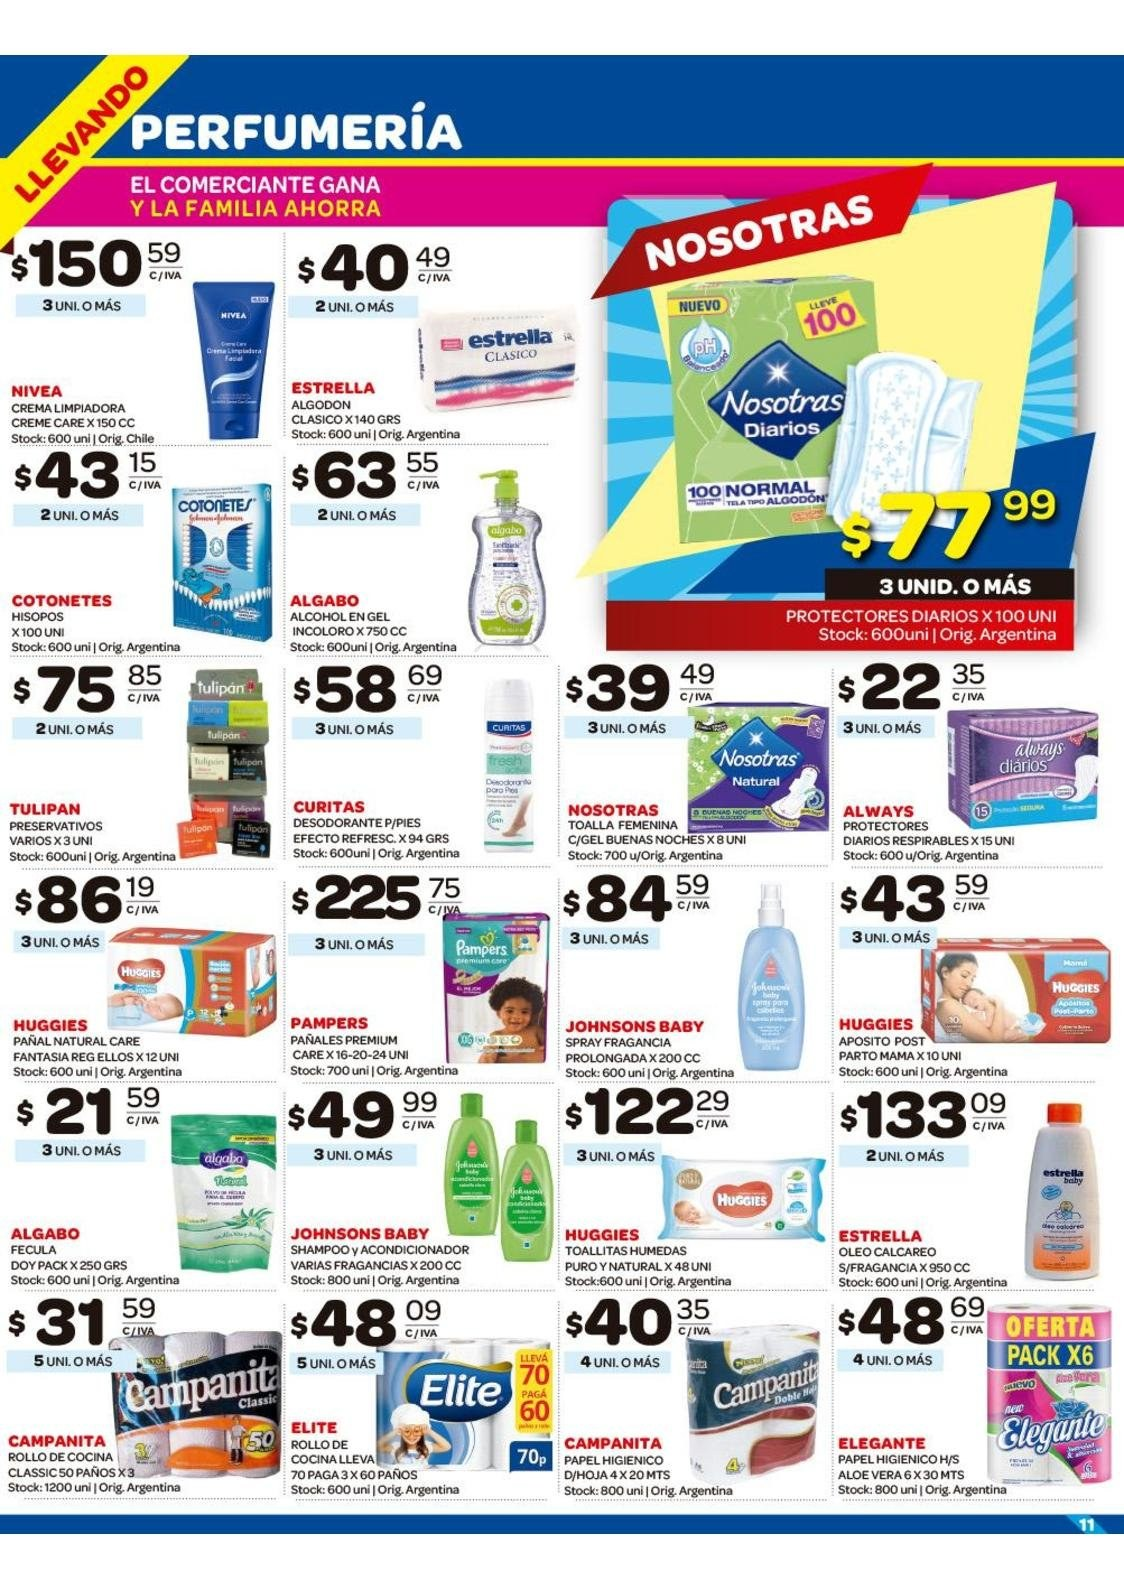 Folleto actual Carrefour - 14.1.2019 - 20.1.2019 - Ventas - papel higienico a2cf2902b186